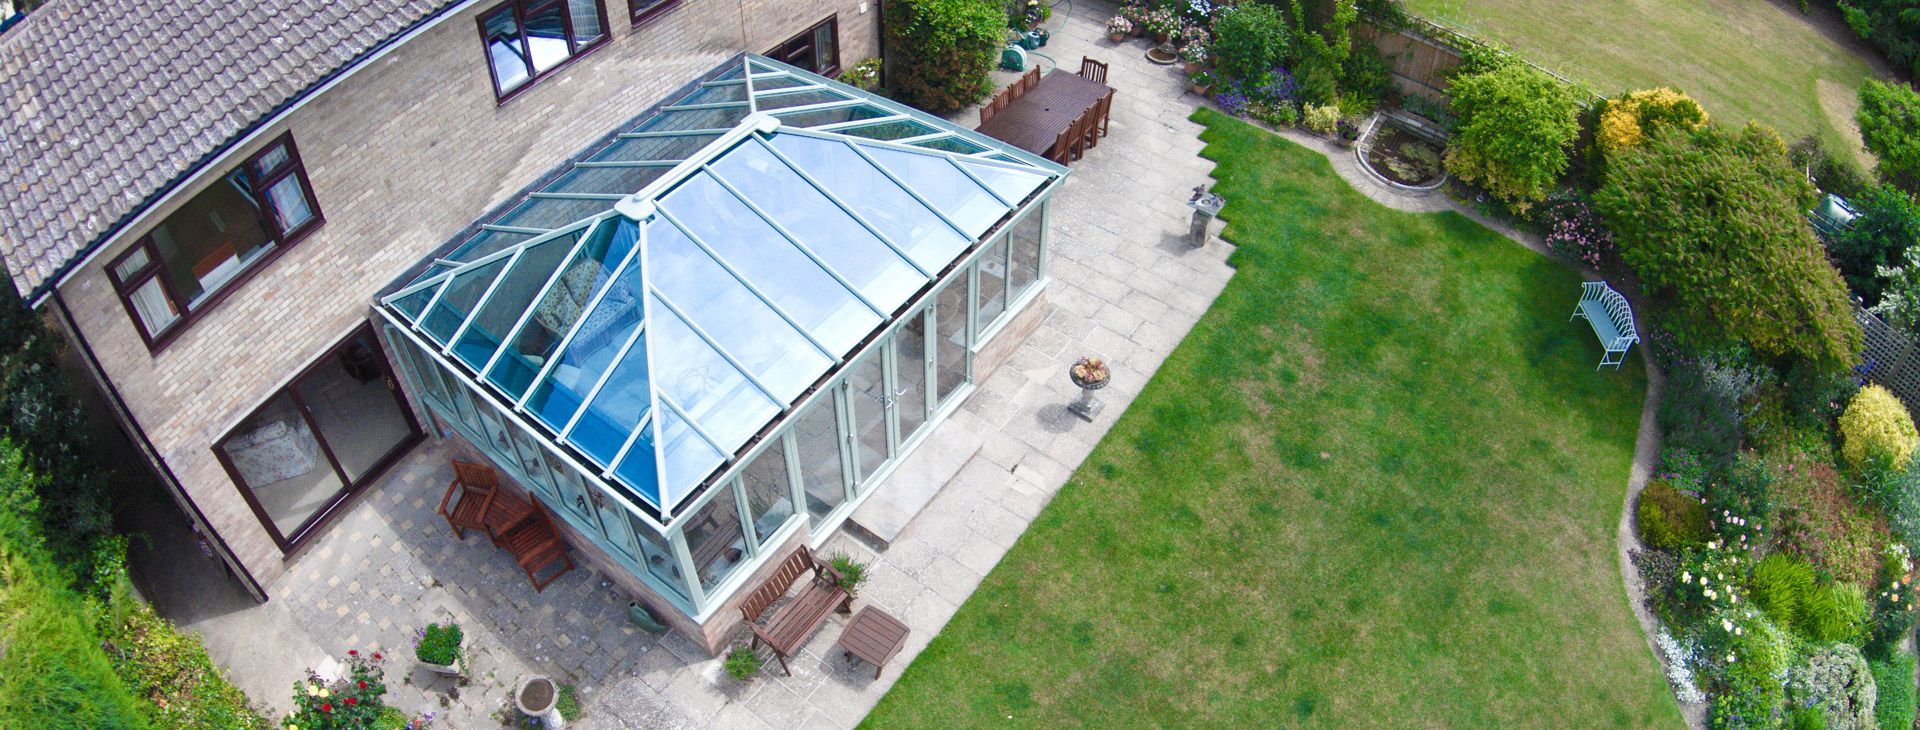 conservatories2-1920x730